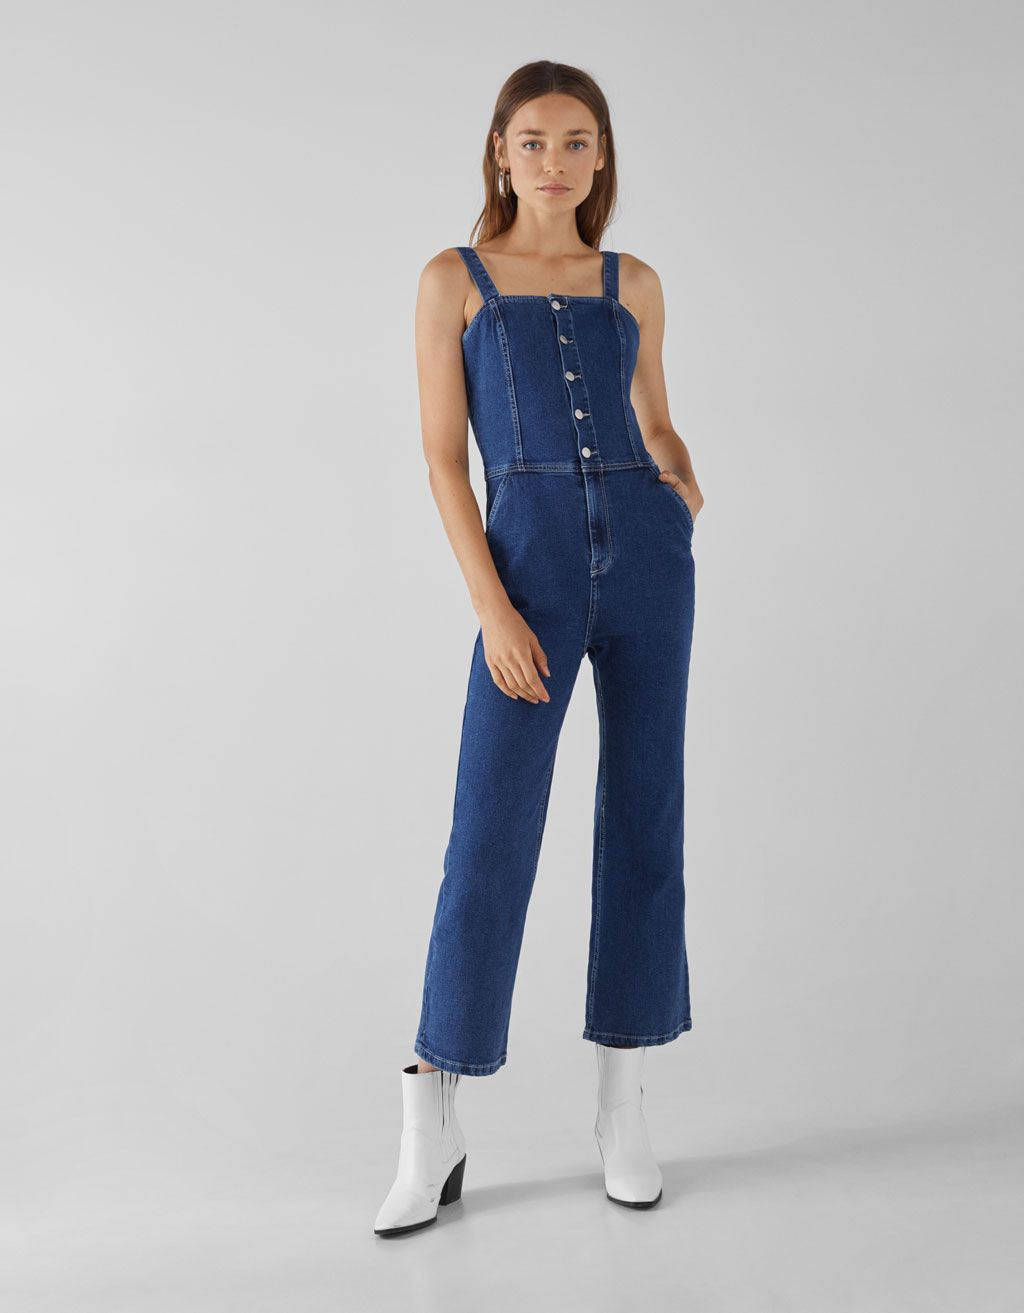 6c412e6b1ae6 Long denim dungarees with buttons - Bershka  newin  new fashion  clothes   party partycollection  trend  trendy  cool 2018  tendencia moda  outfit ...